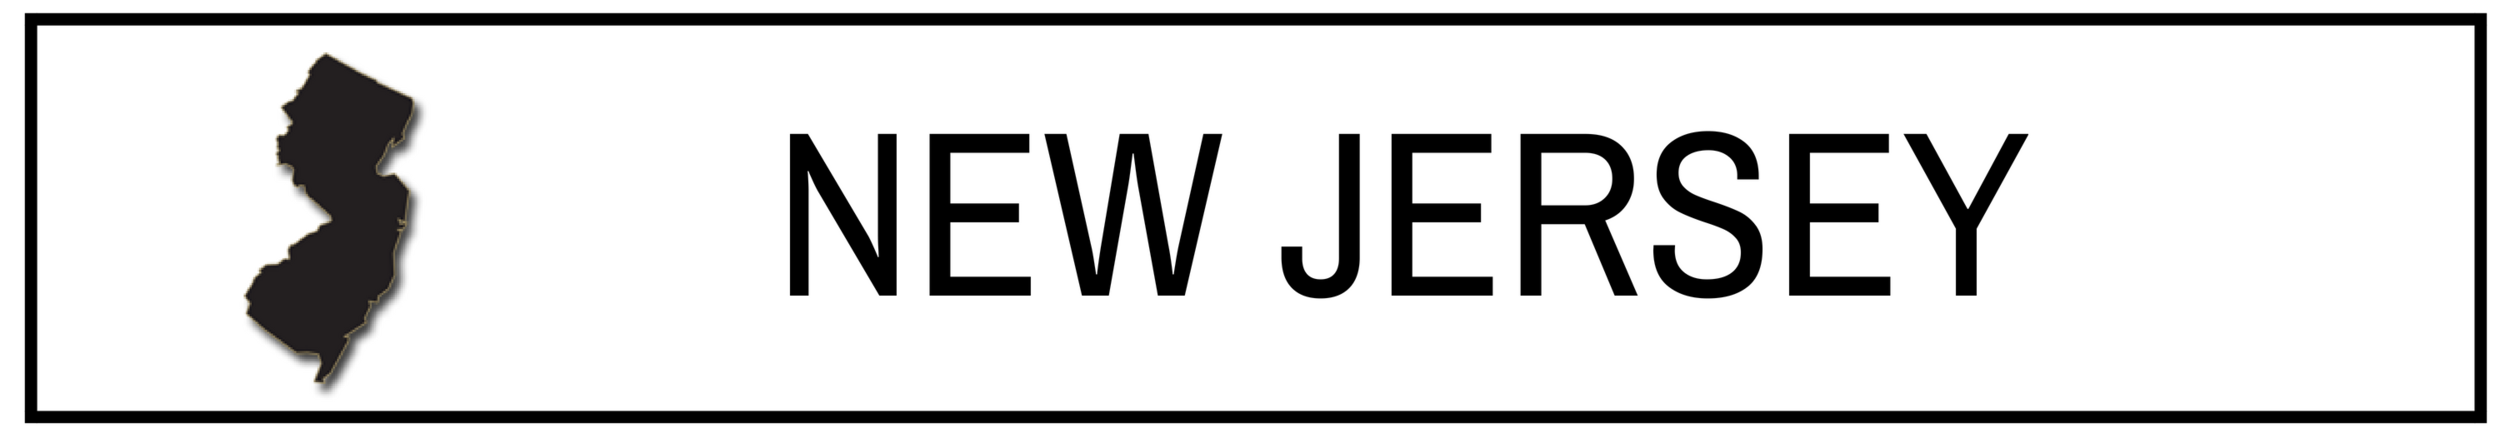 newjersey.png